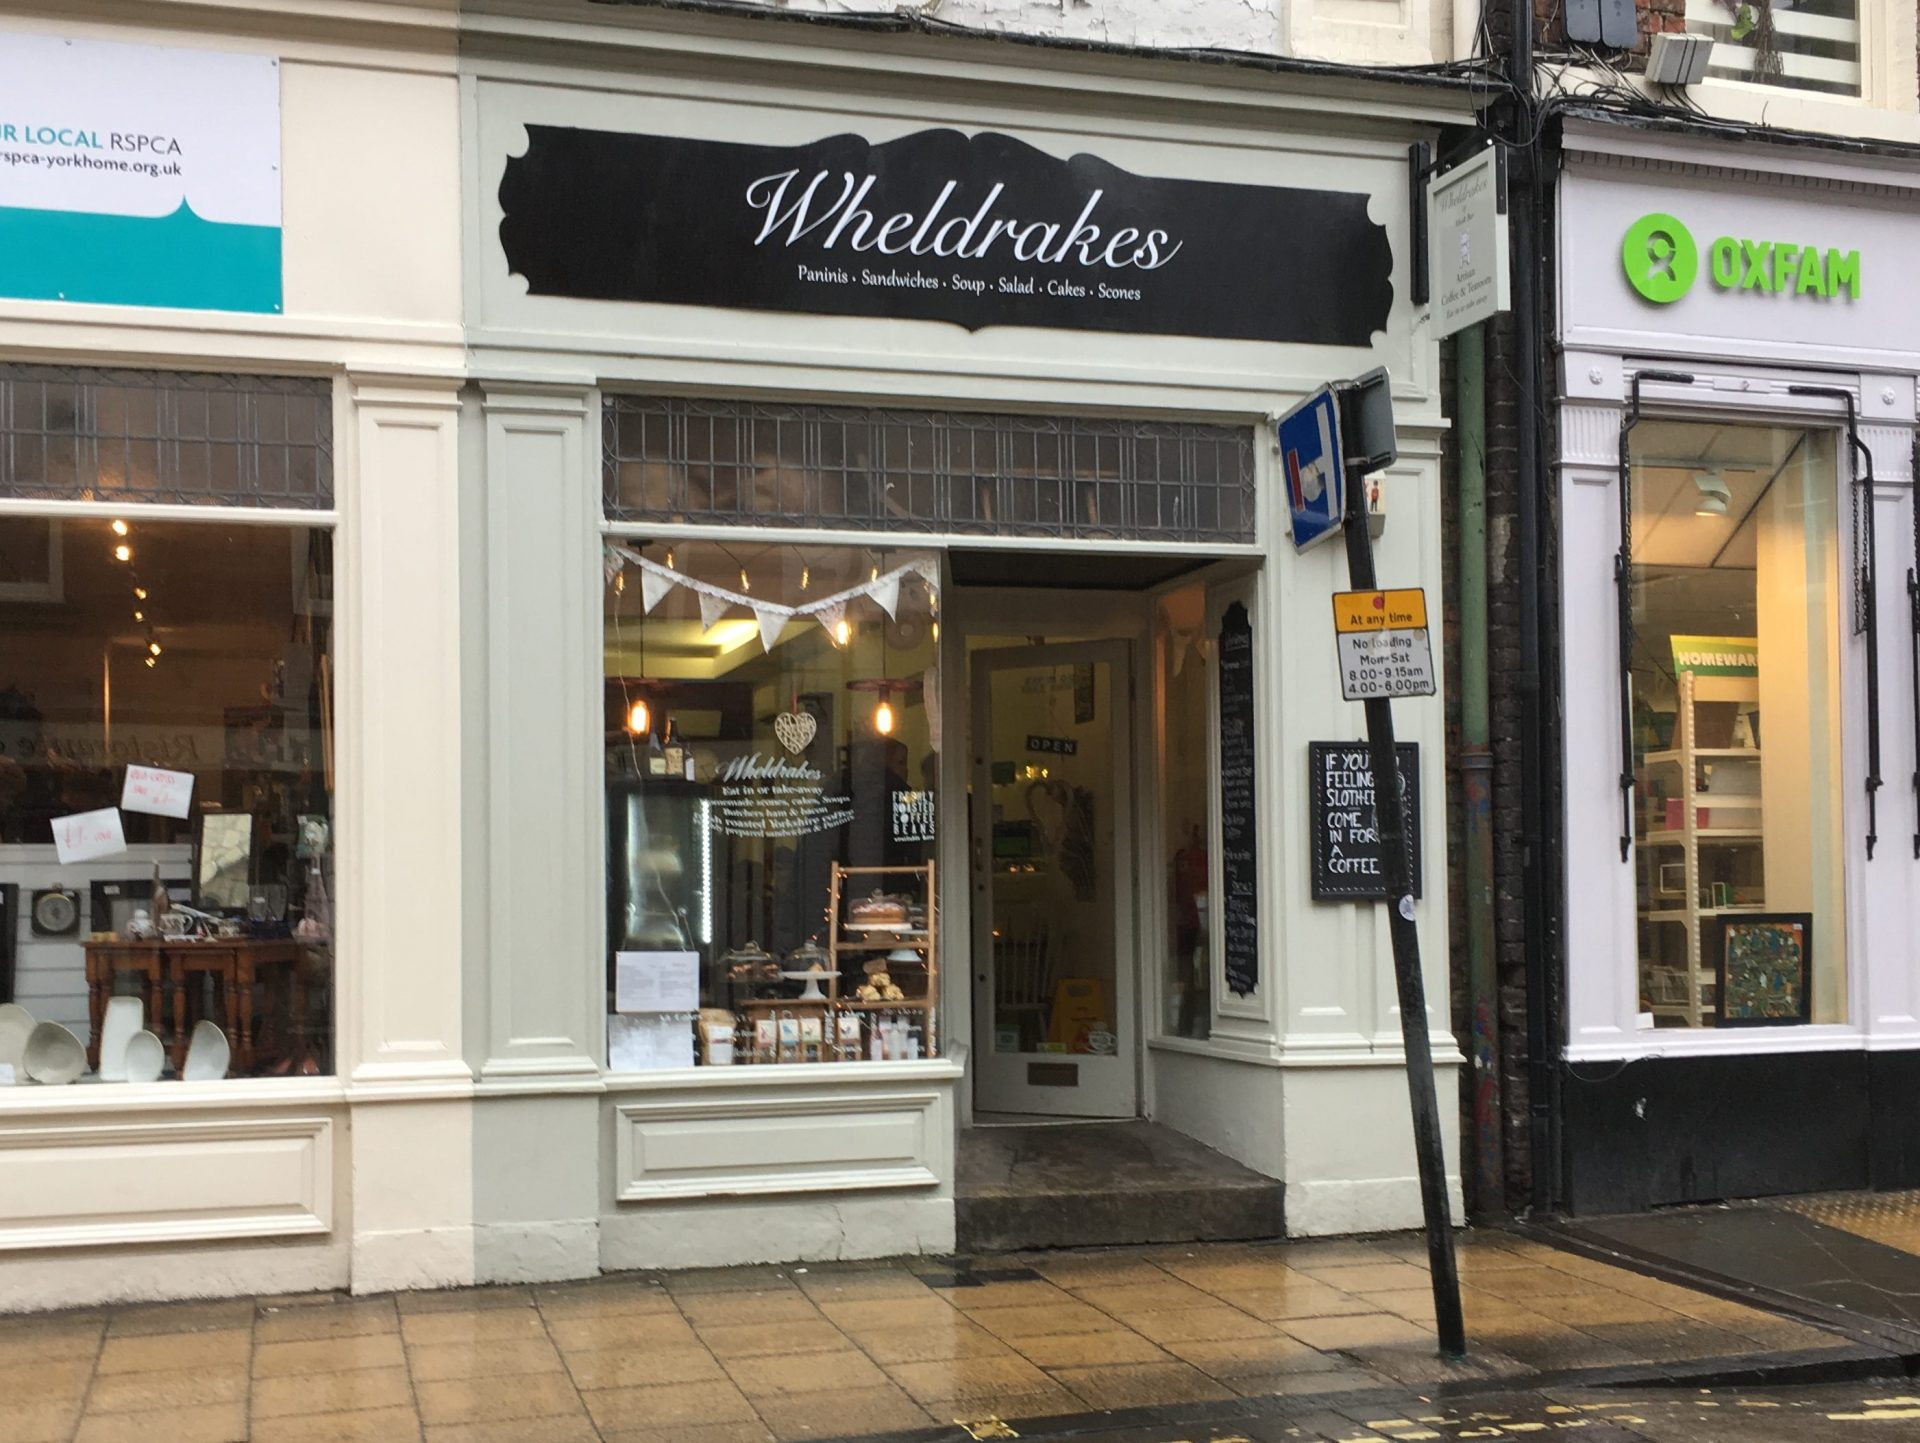 Wheldrakes Cafe, York